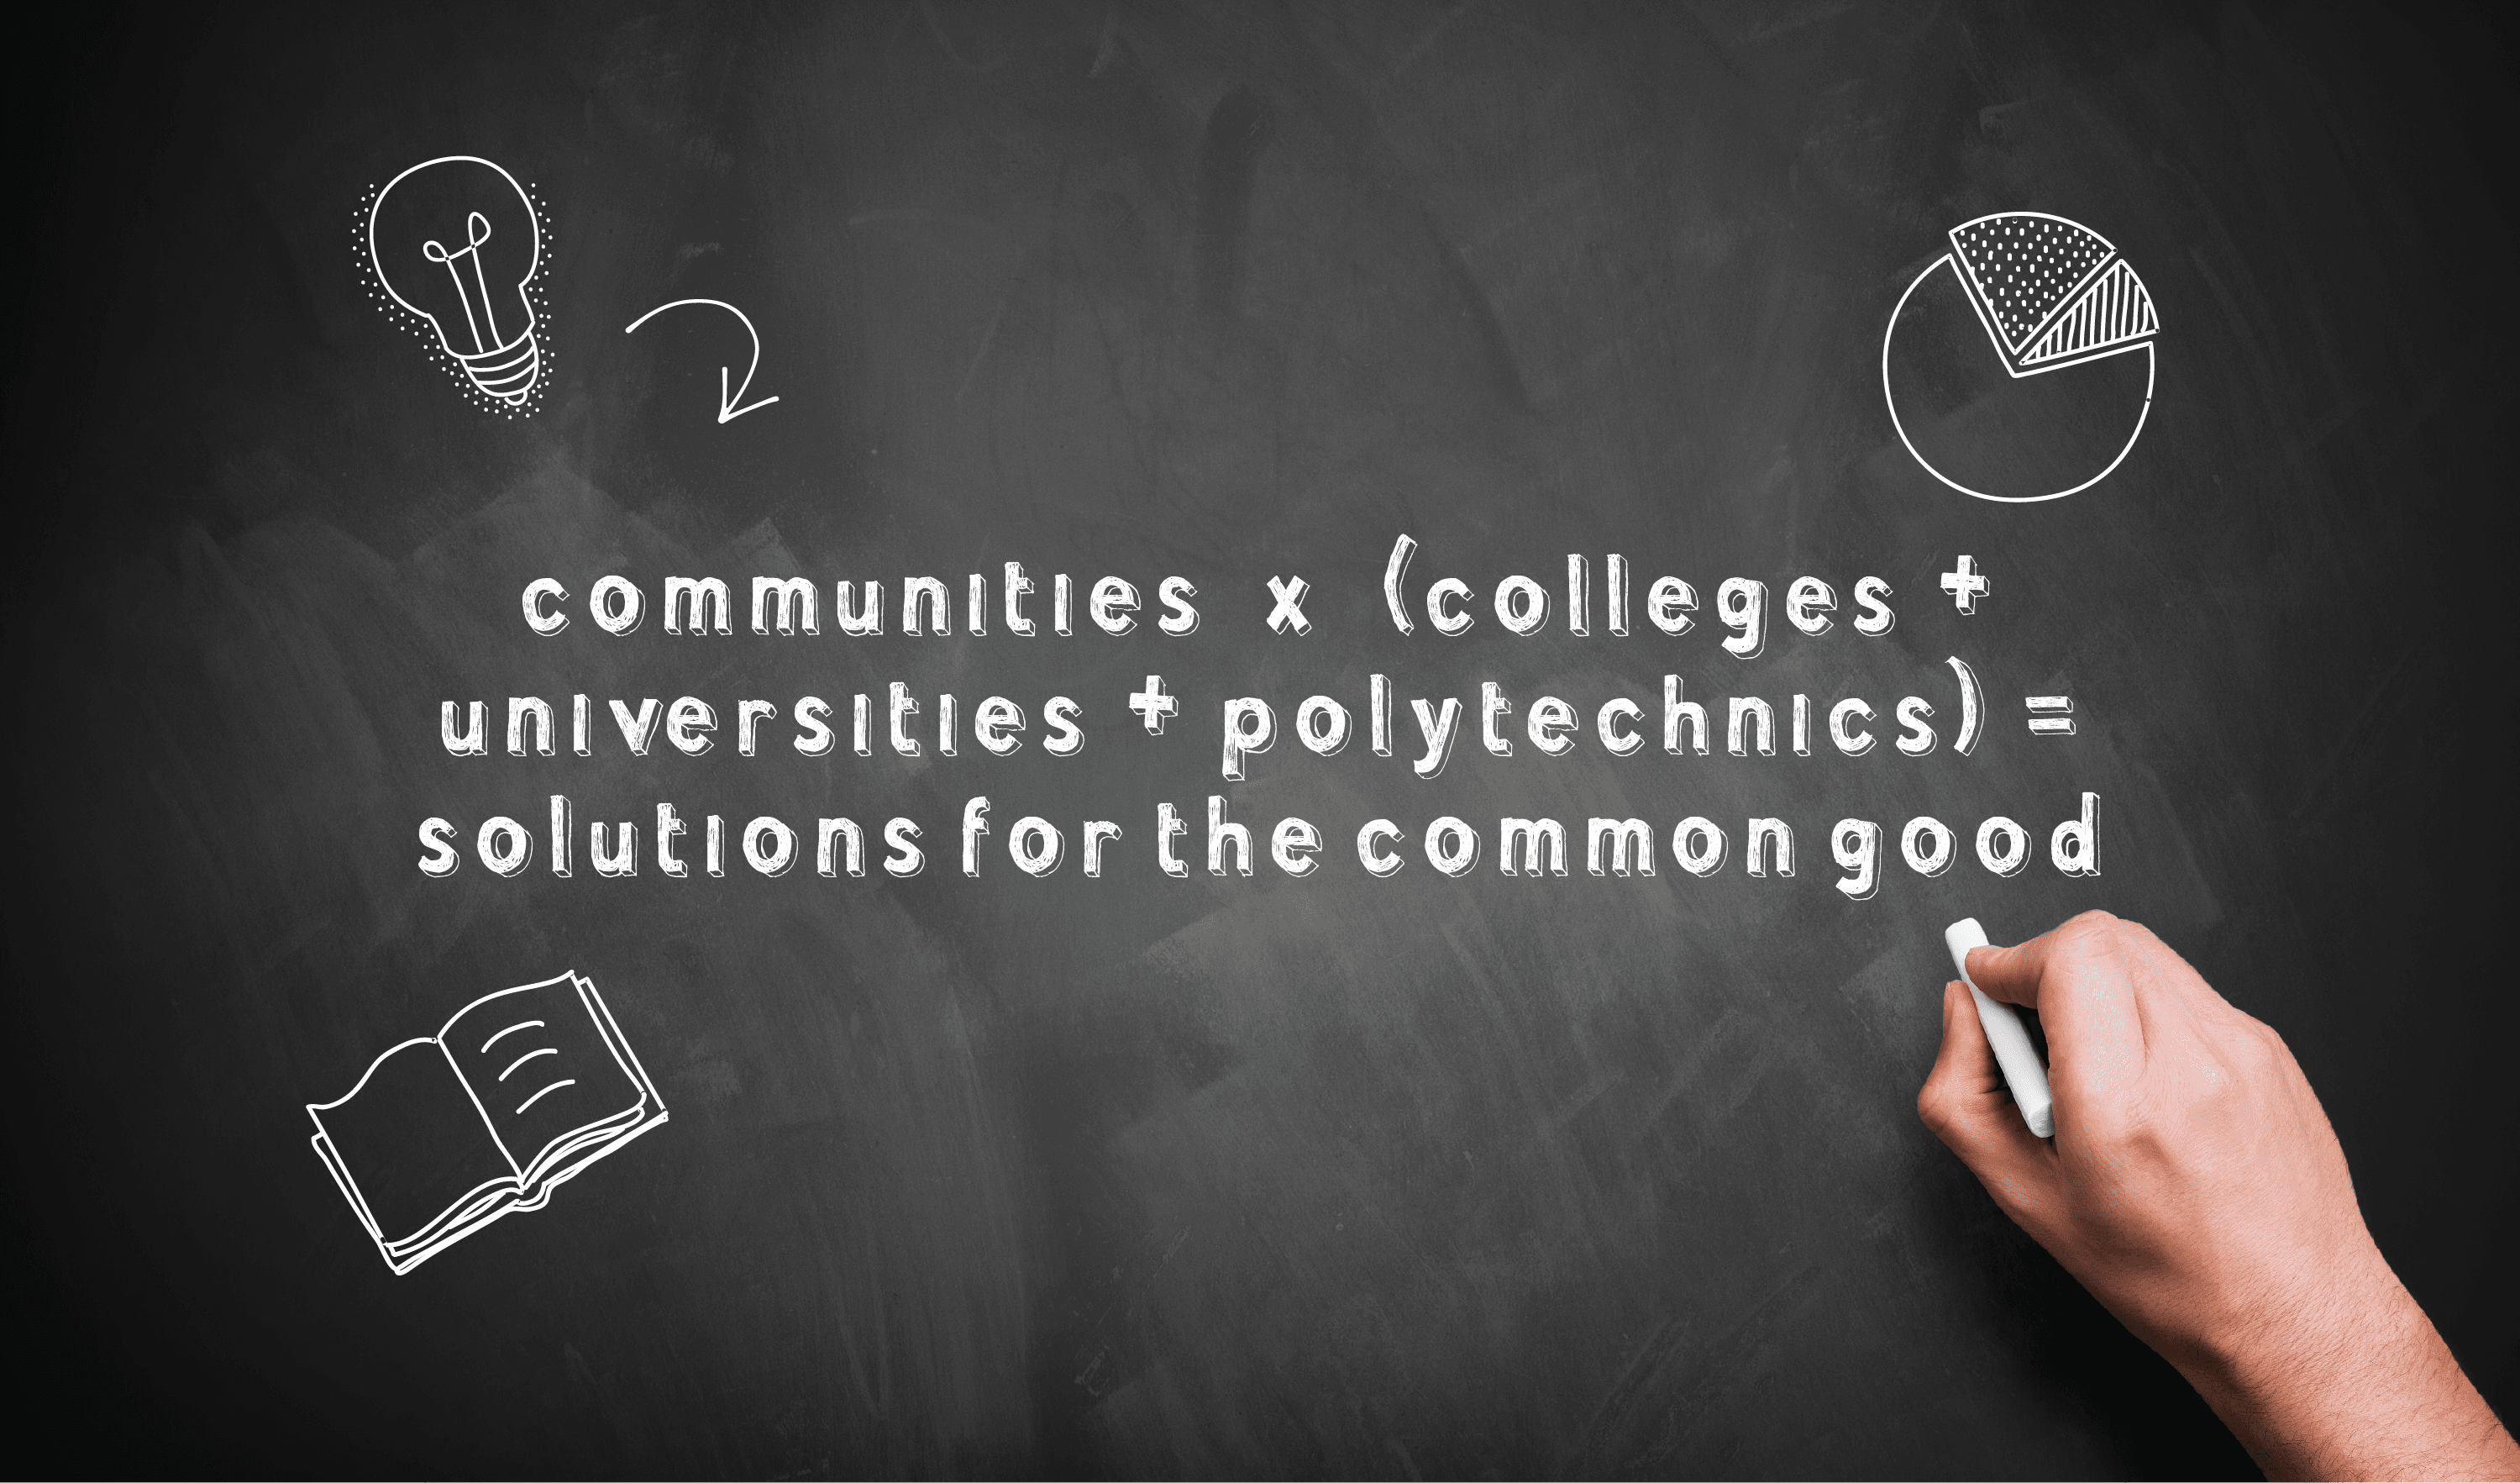 Communities + Colleges + Universities = Better World